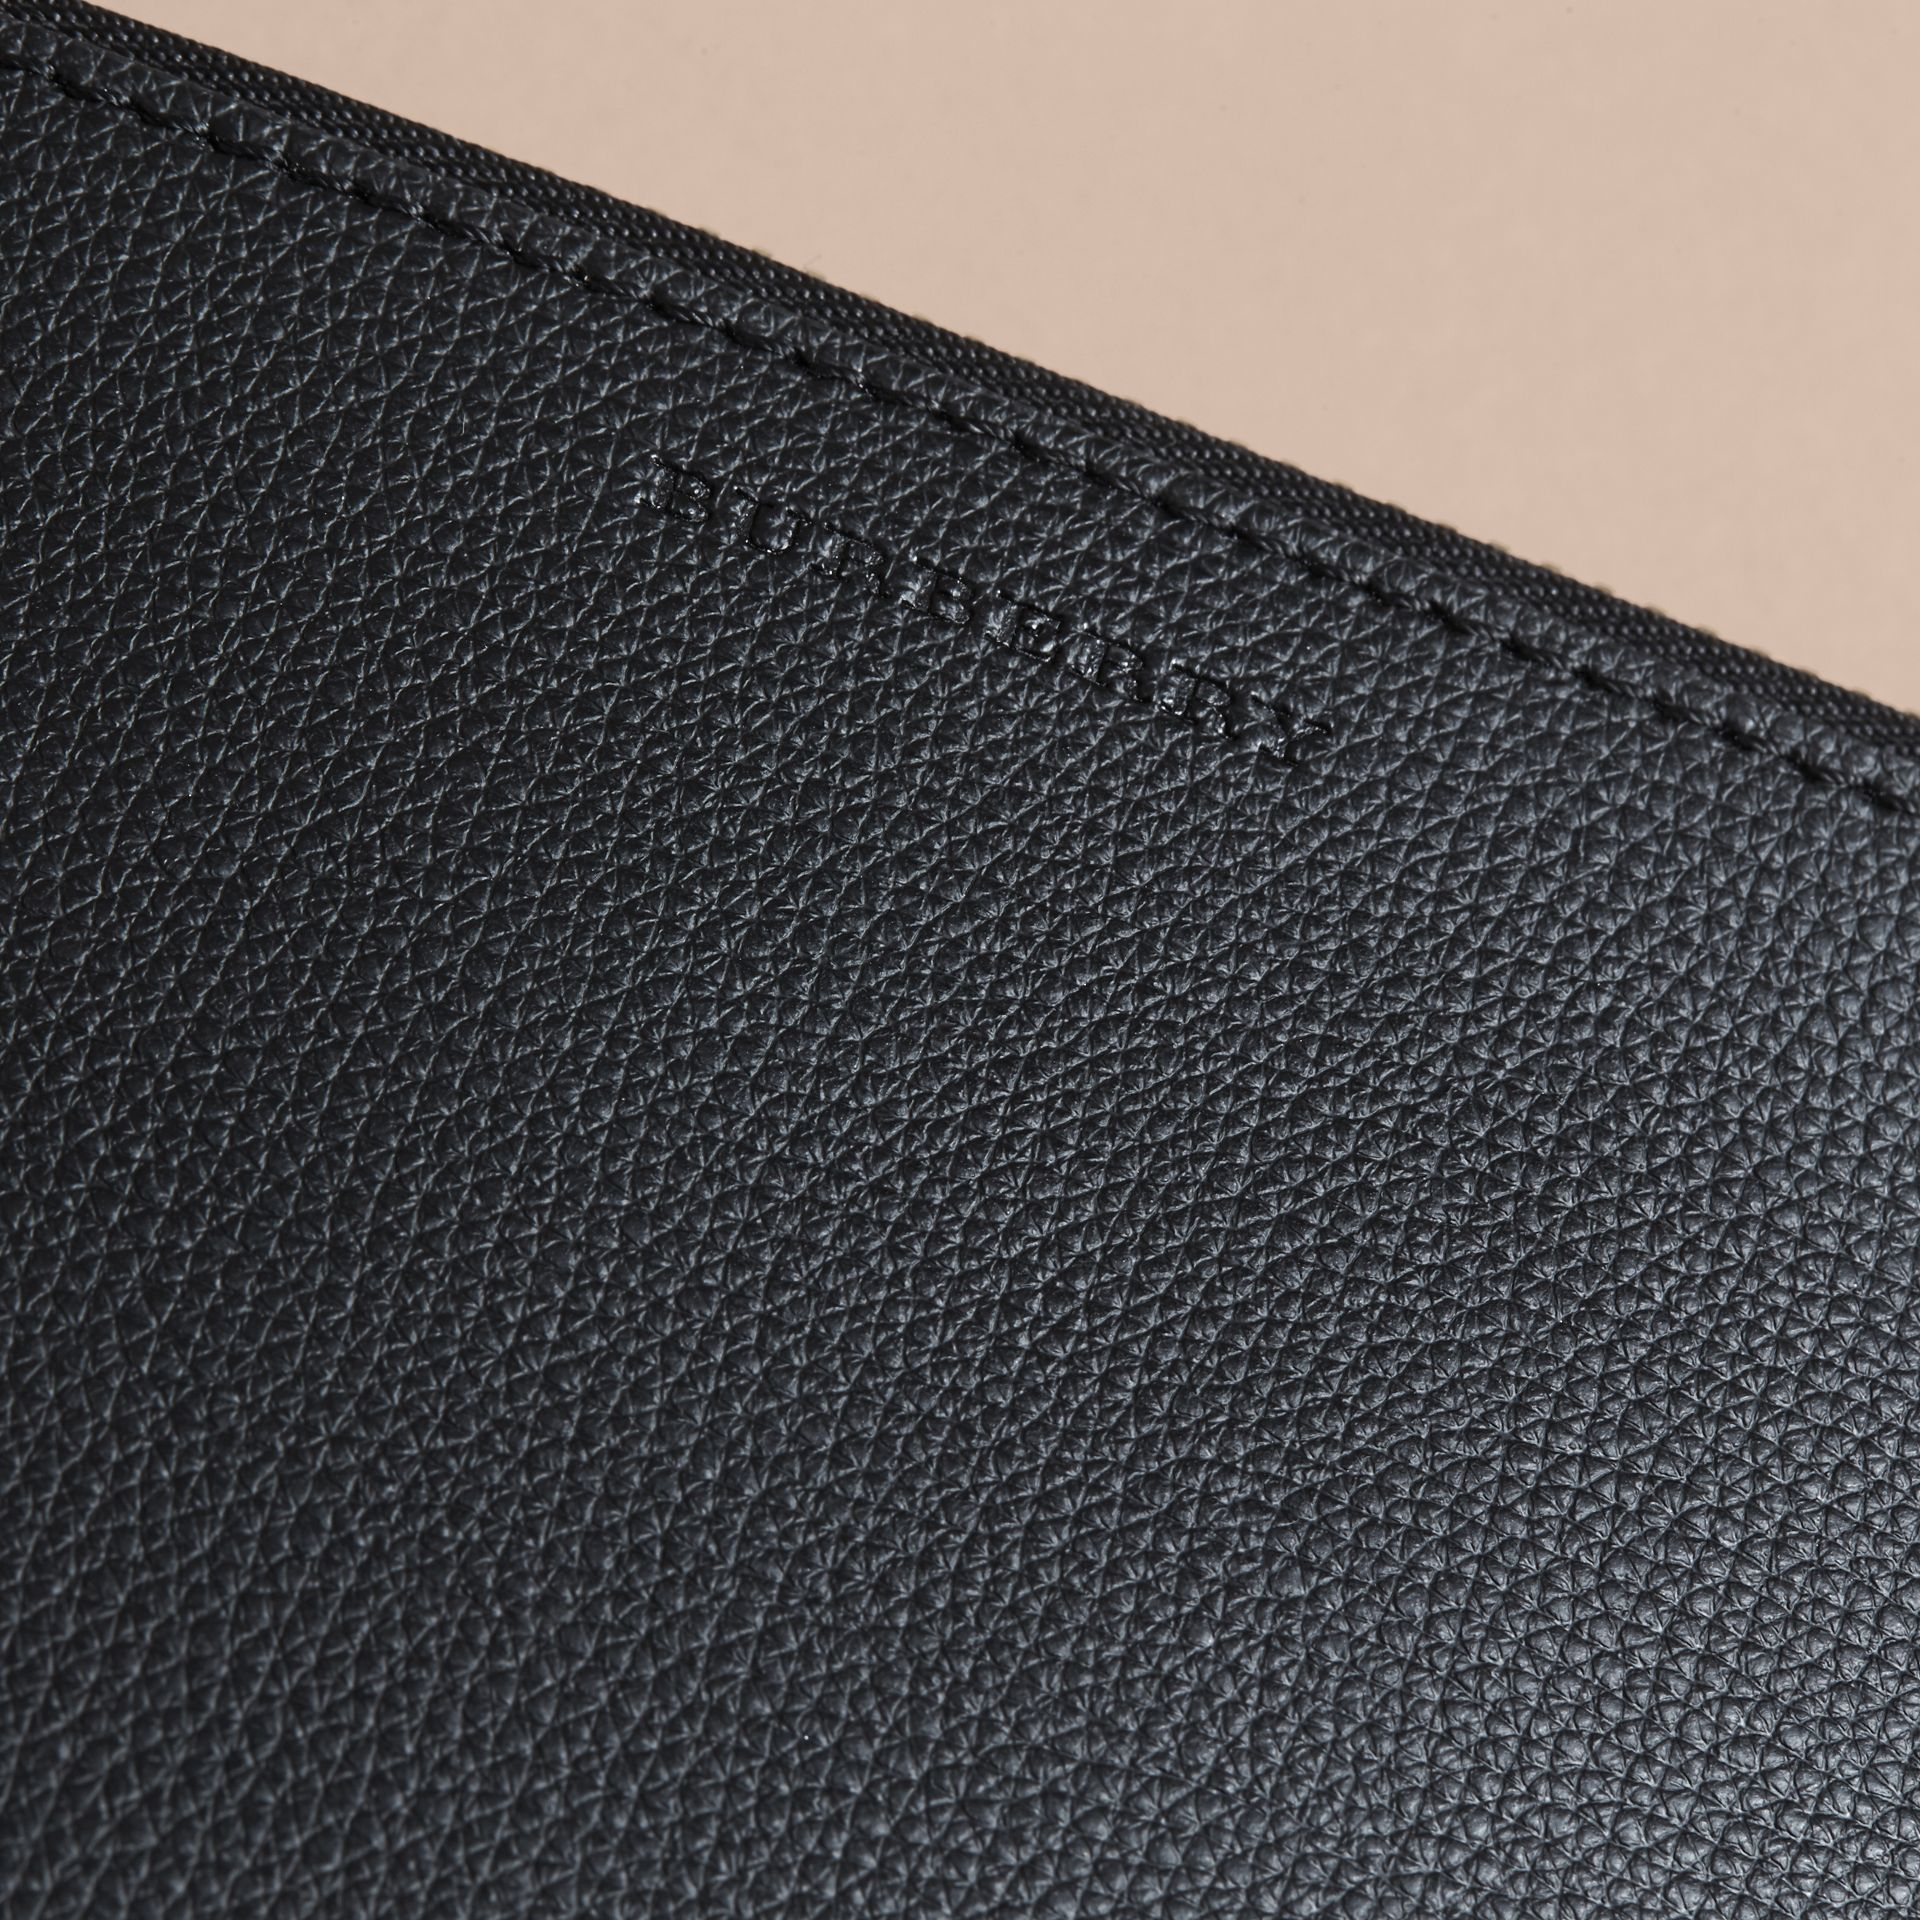 Haymarket Check and Leather Pouch in Black - Women | Burberry Australia - gallery image 2